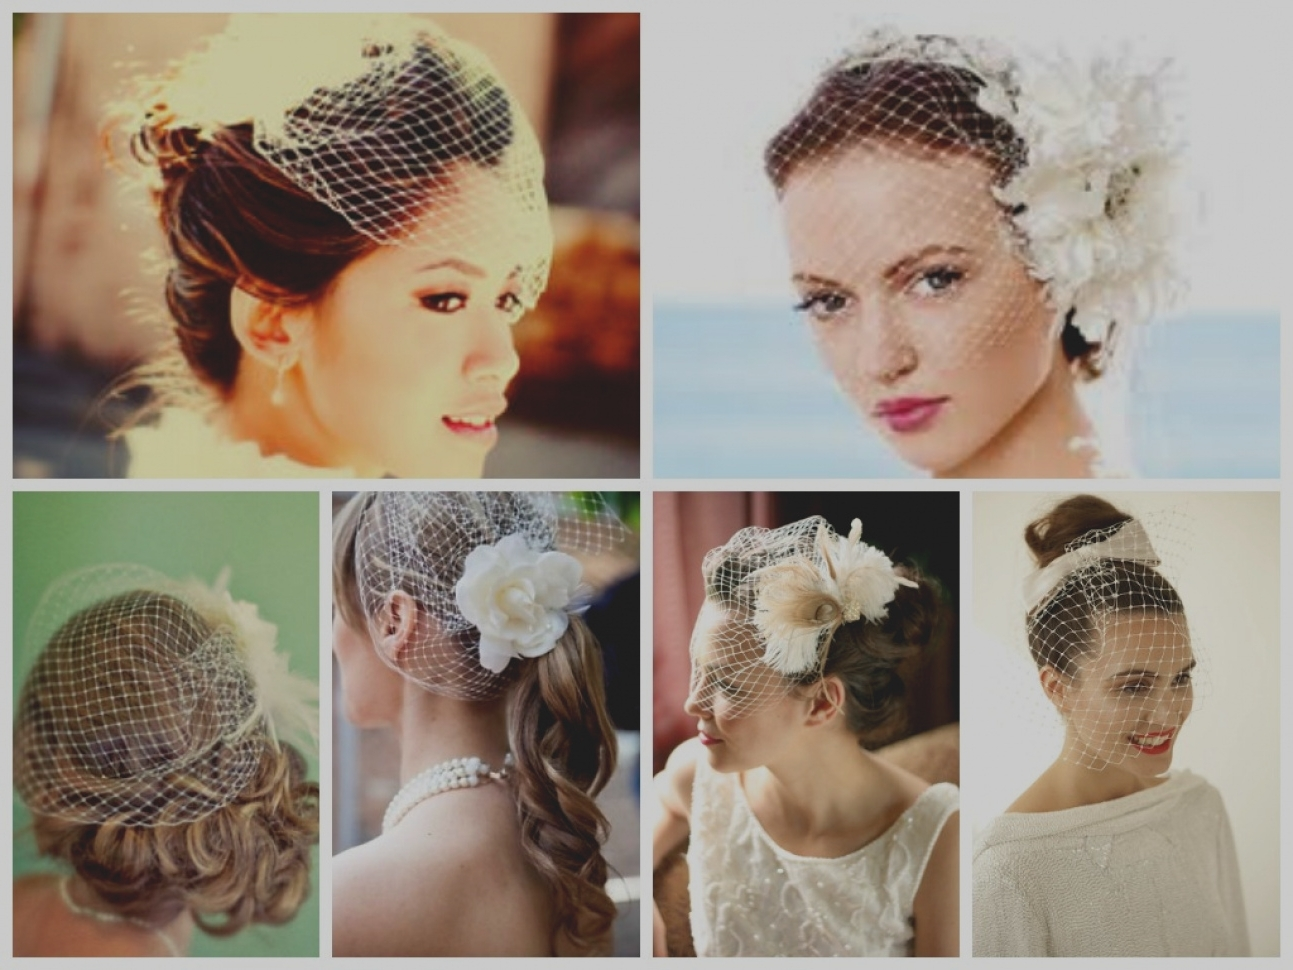 Widely Used Wedding Hairstyles For Short Hair With Birdcage Veil Intended For Latest Half Up Wedding Hairstyle With Birdcage Veil Vintage (View 5 of 15)